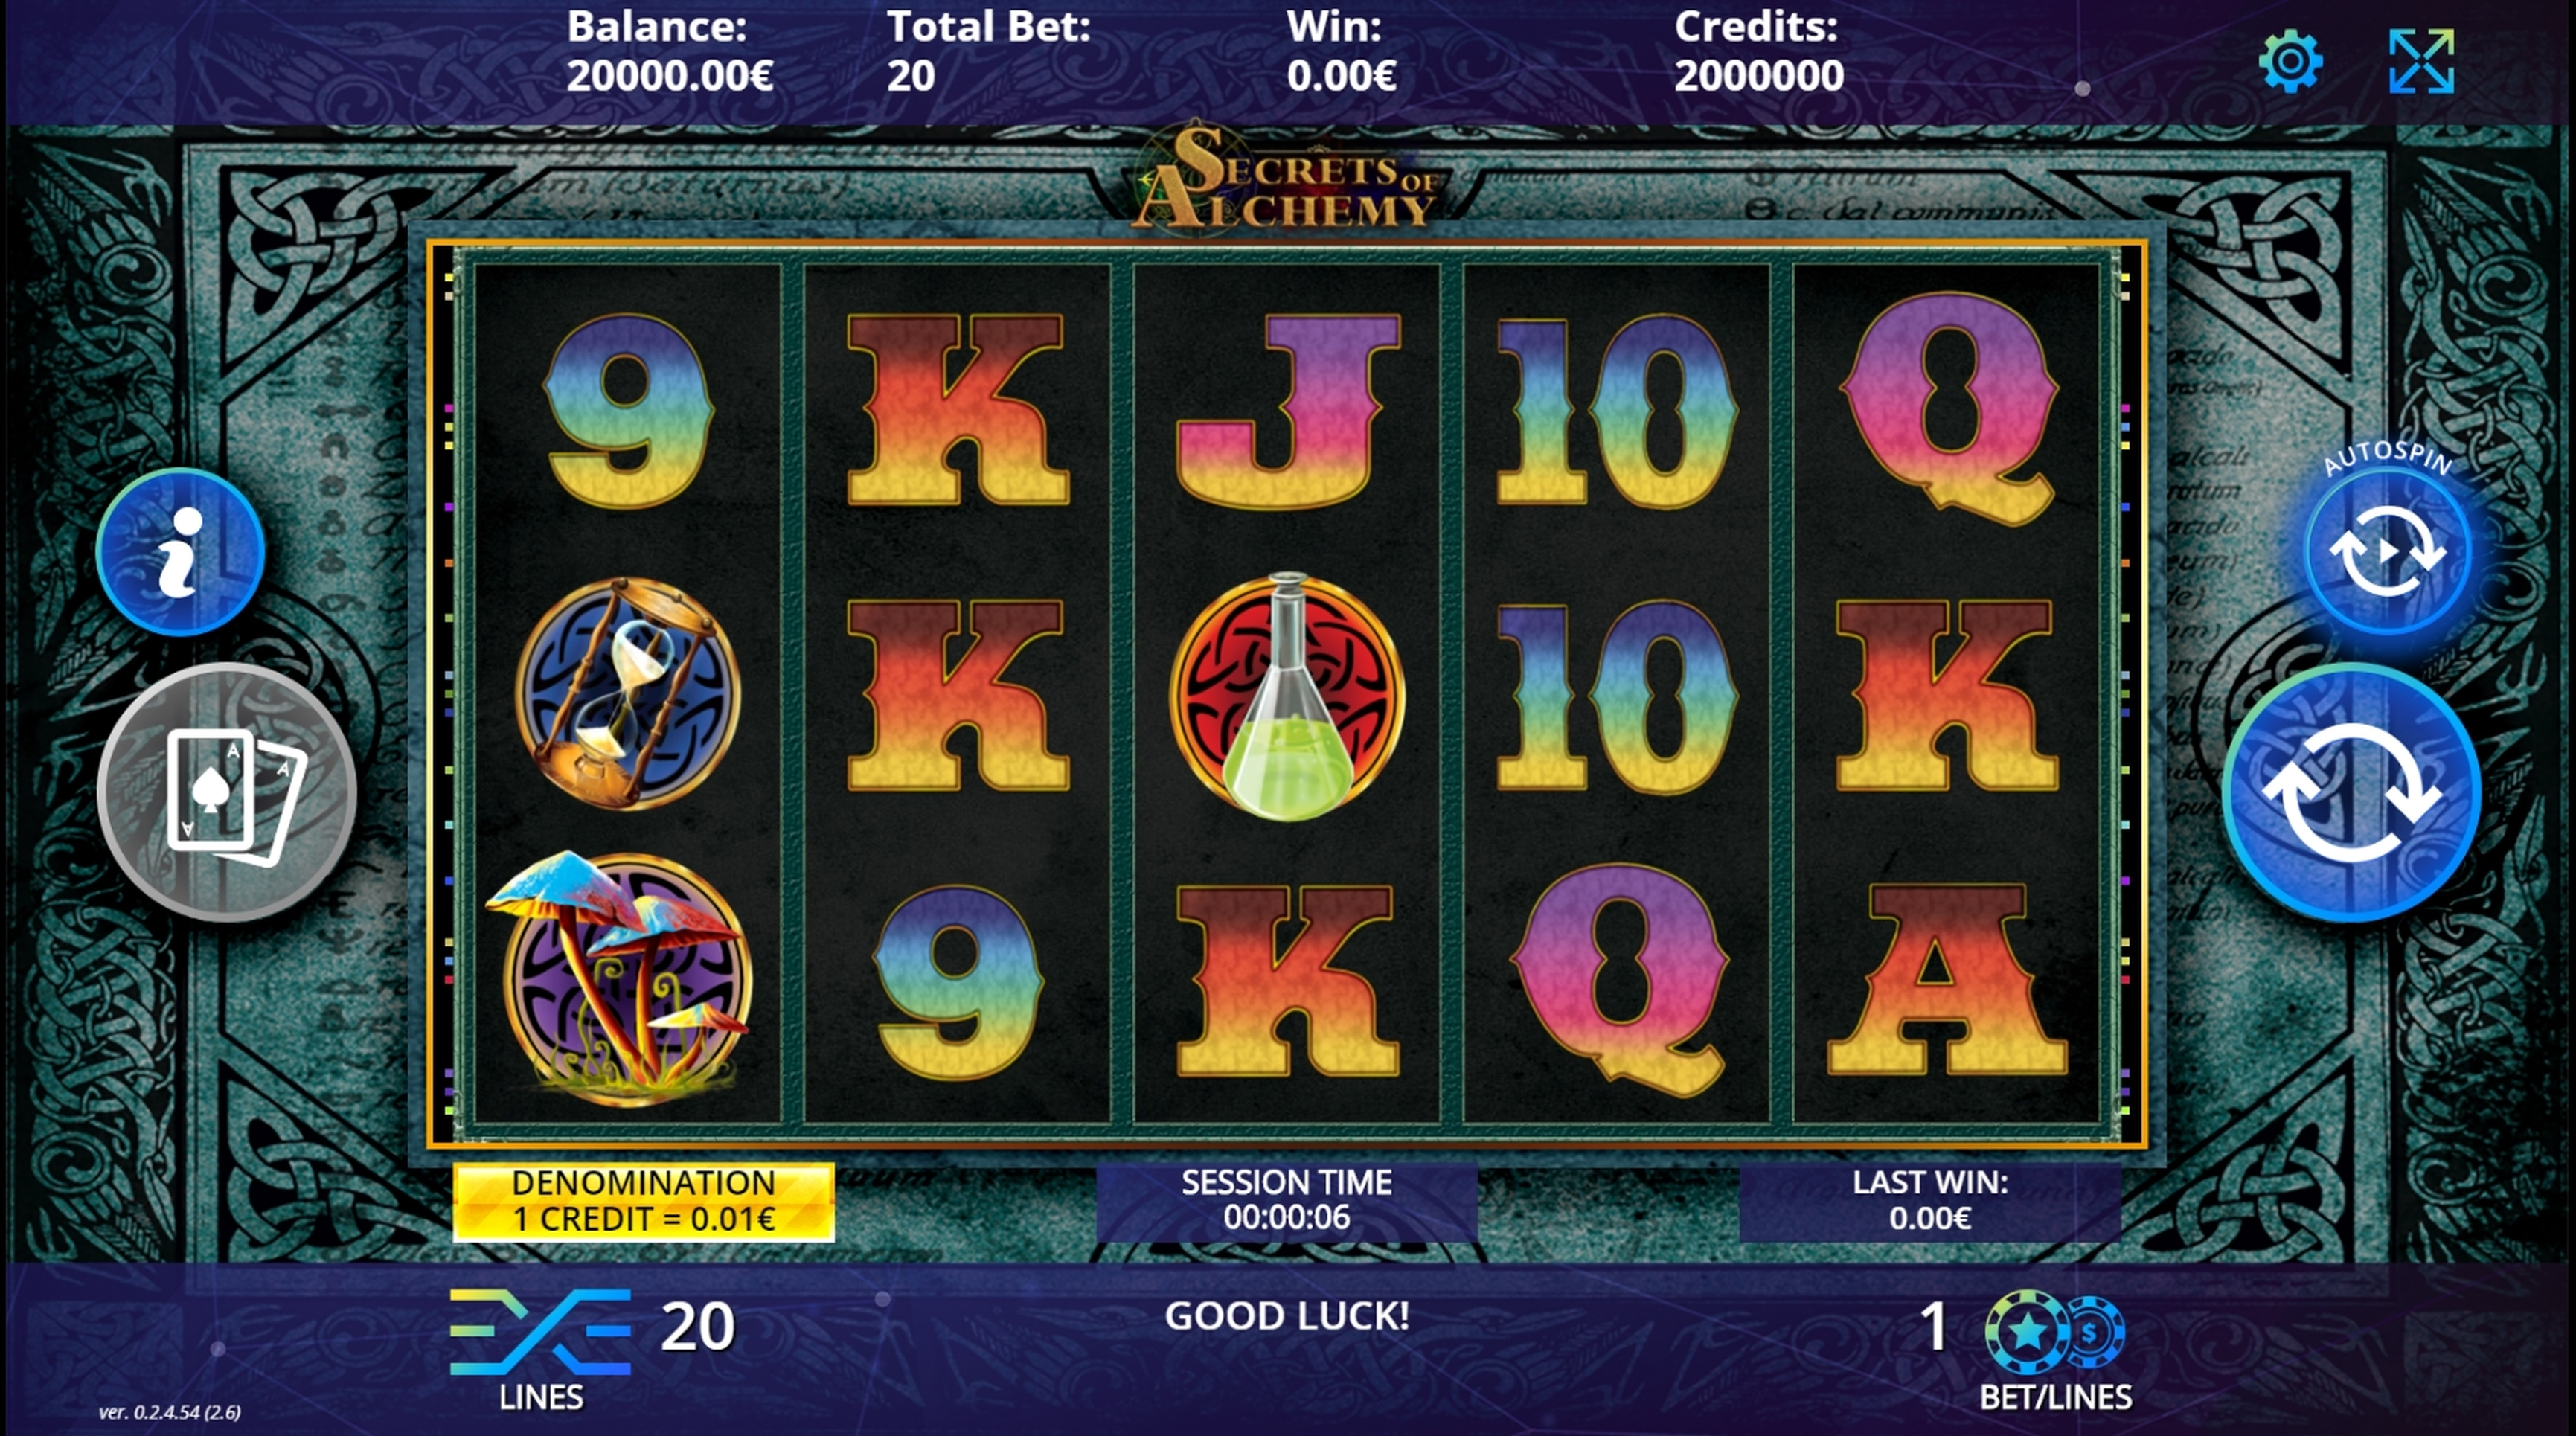 Reels in Secrets of Alchemy (DLV) Slot Game by DLV